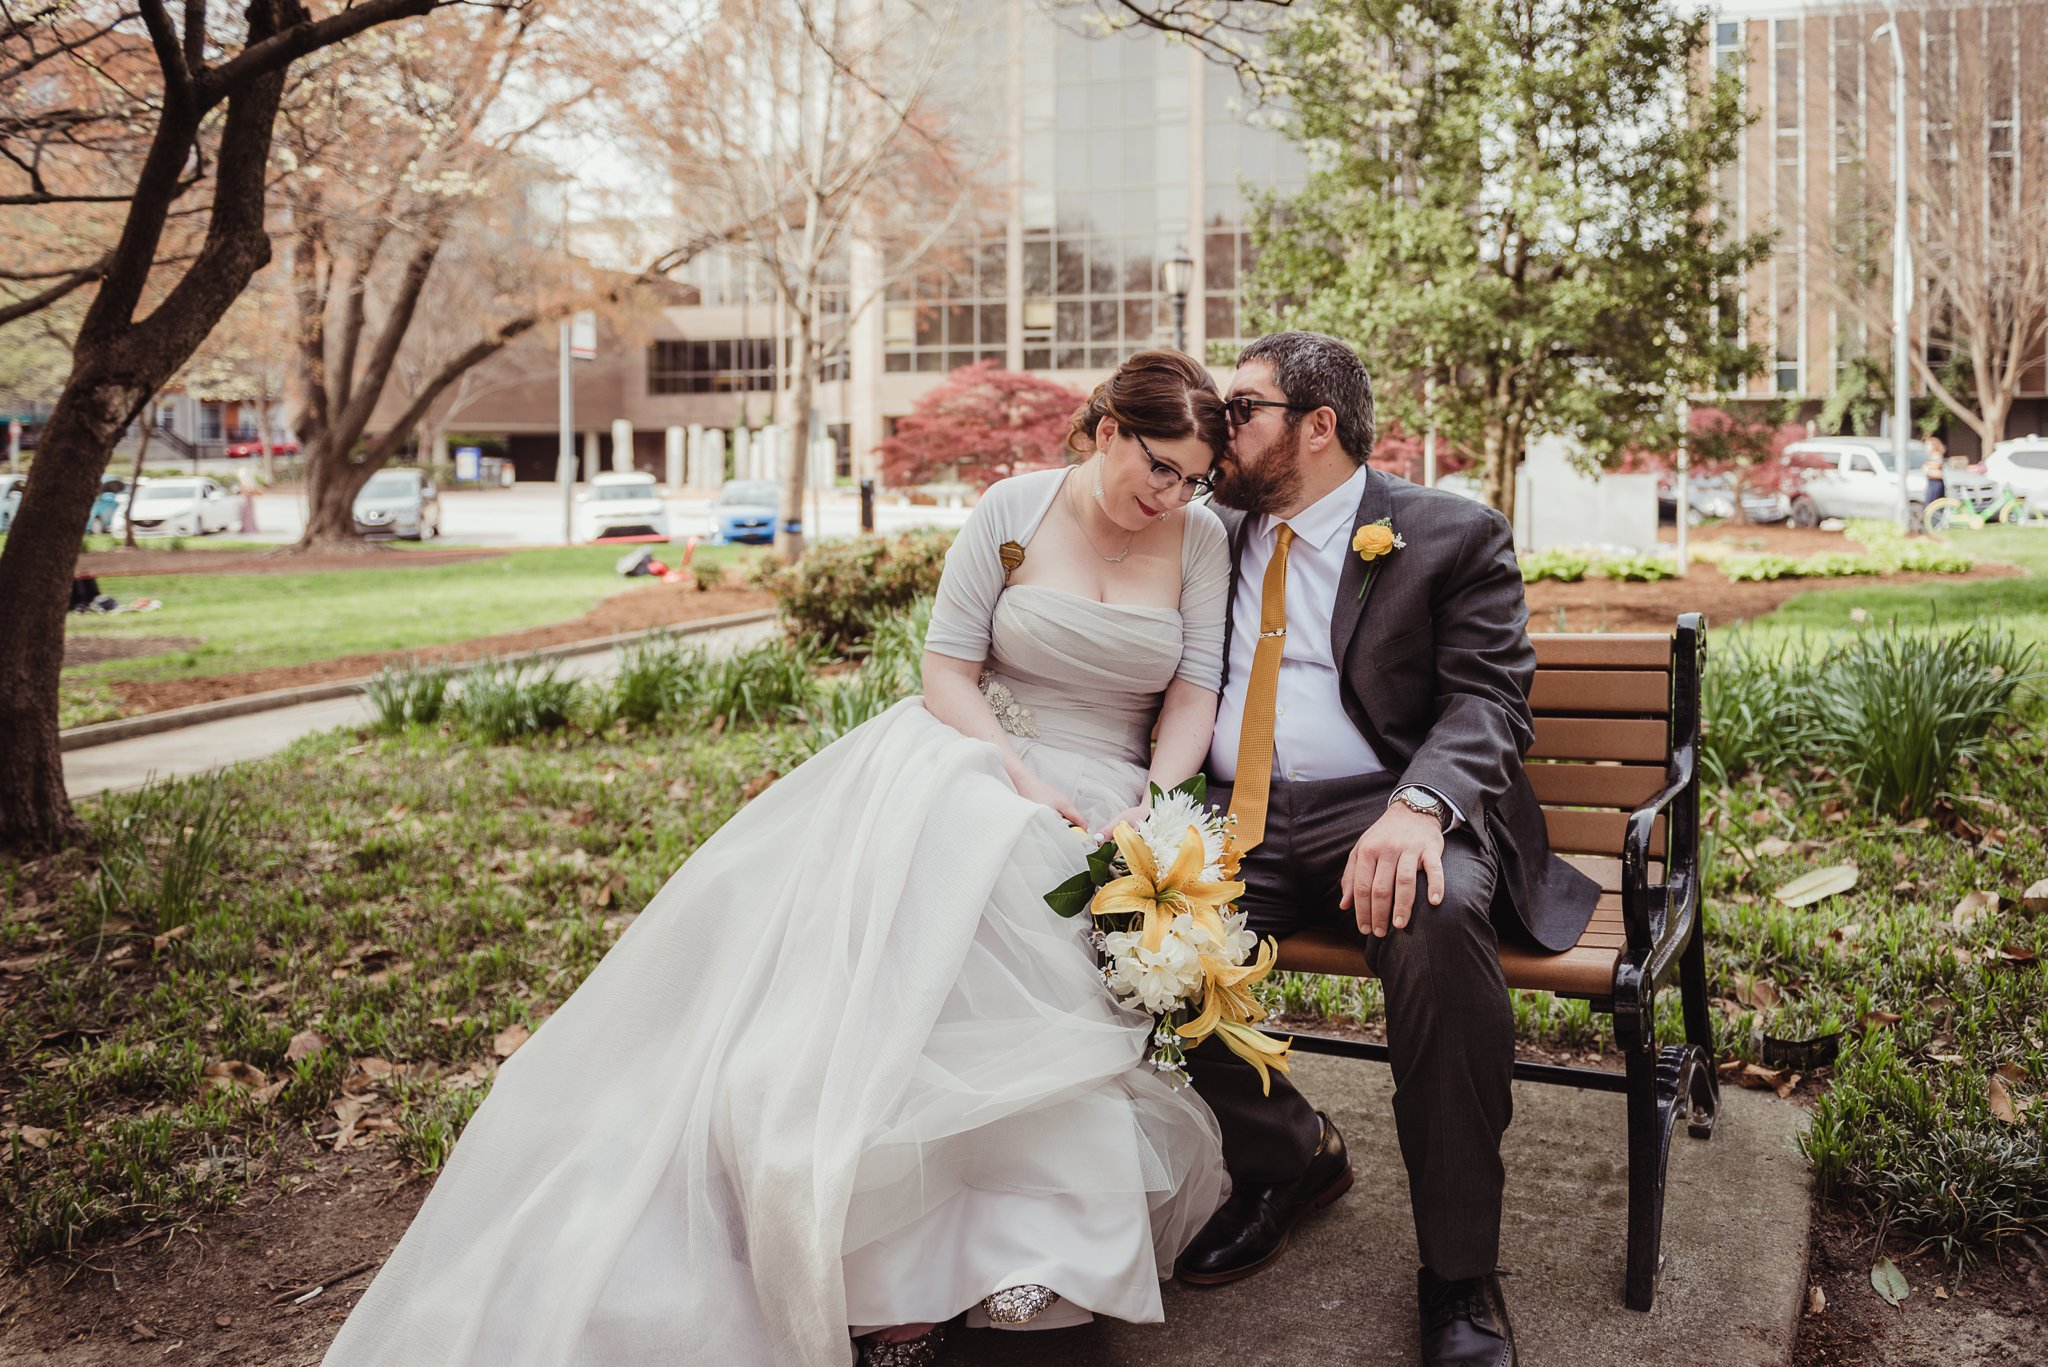 The bride and groom sit together in the park before their wedding day in downtown Raleigh, picture by Rose Trail Images.